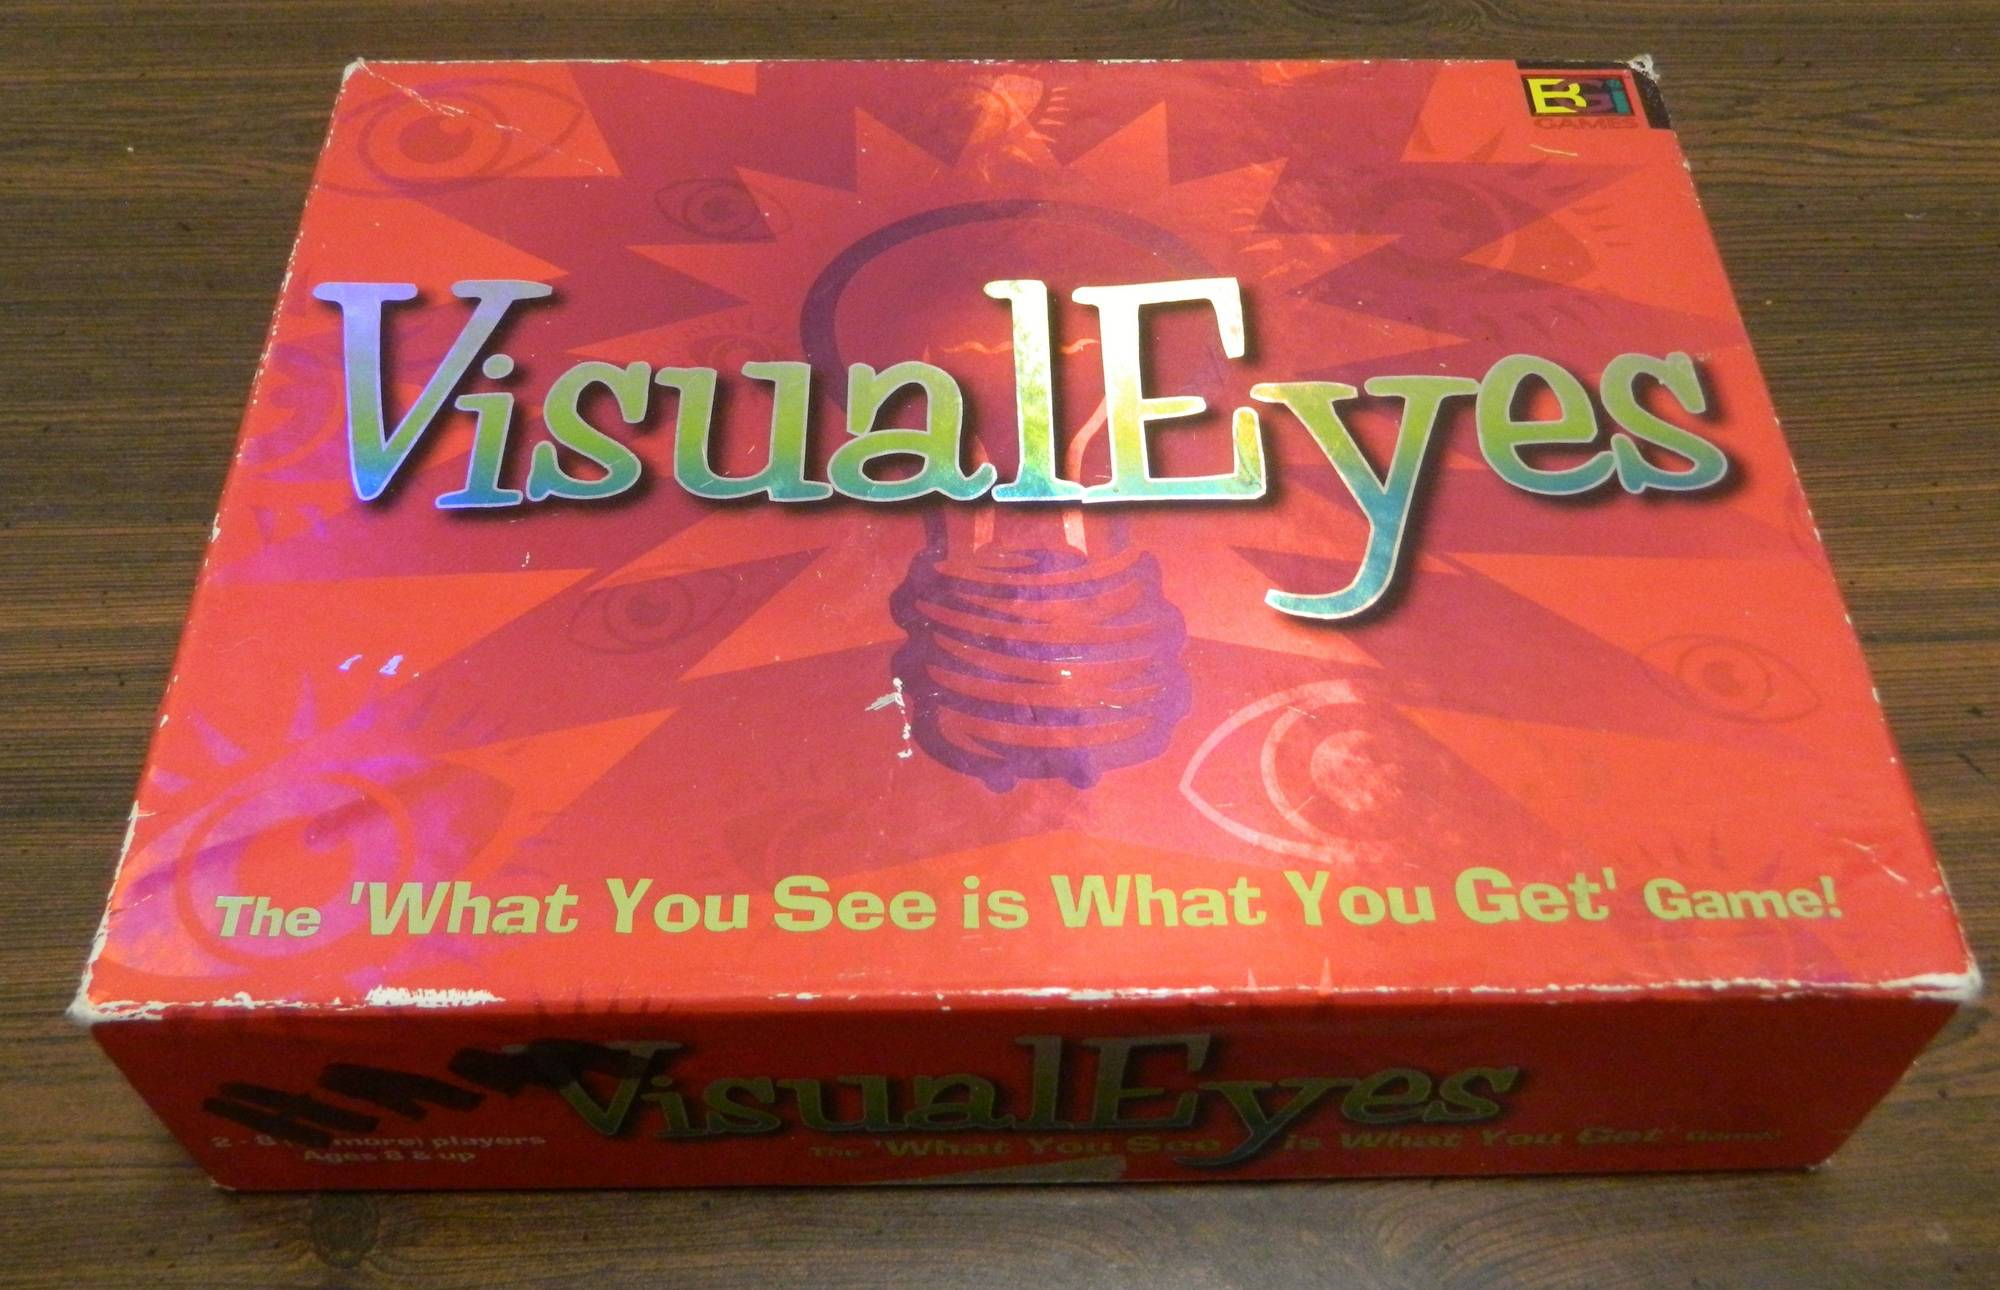 Box for VisualEyes